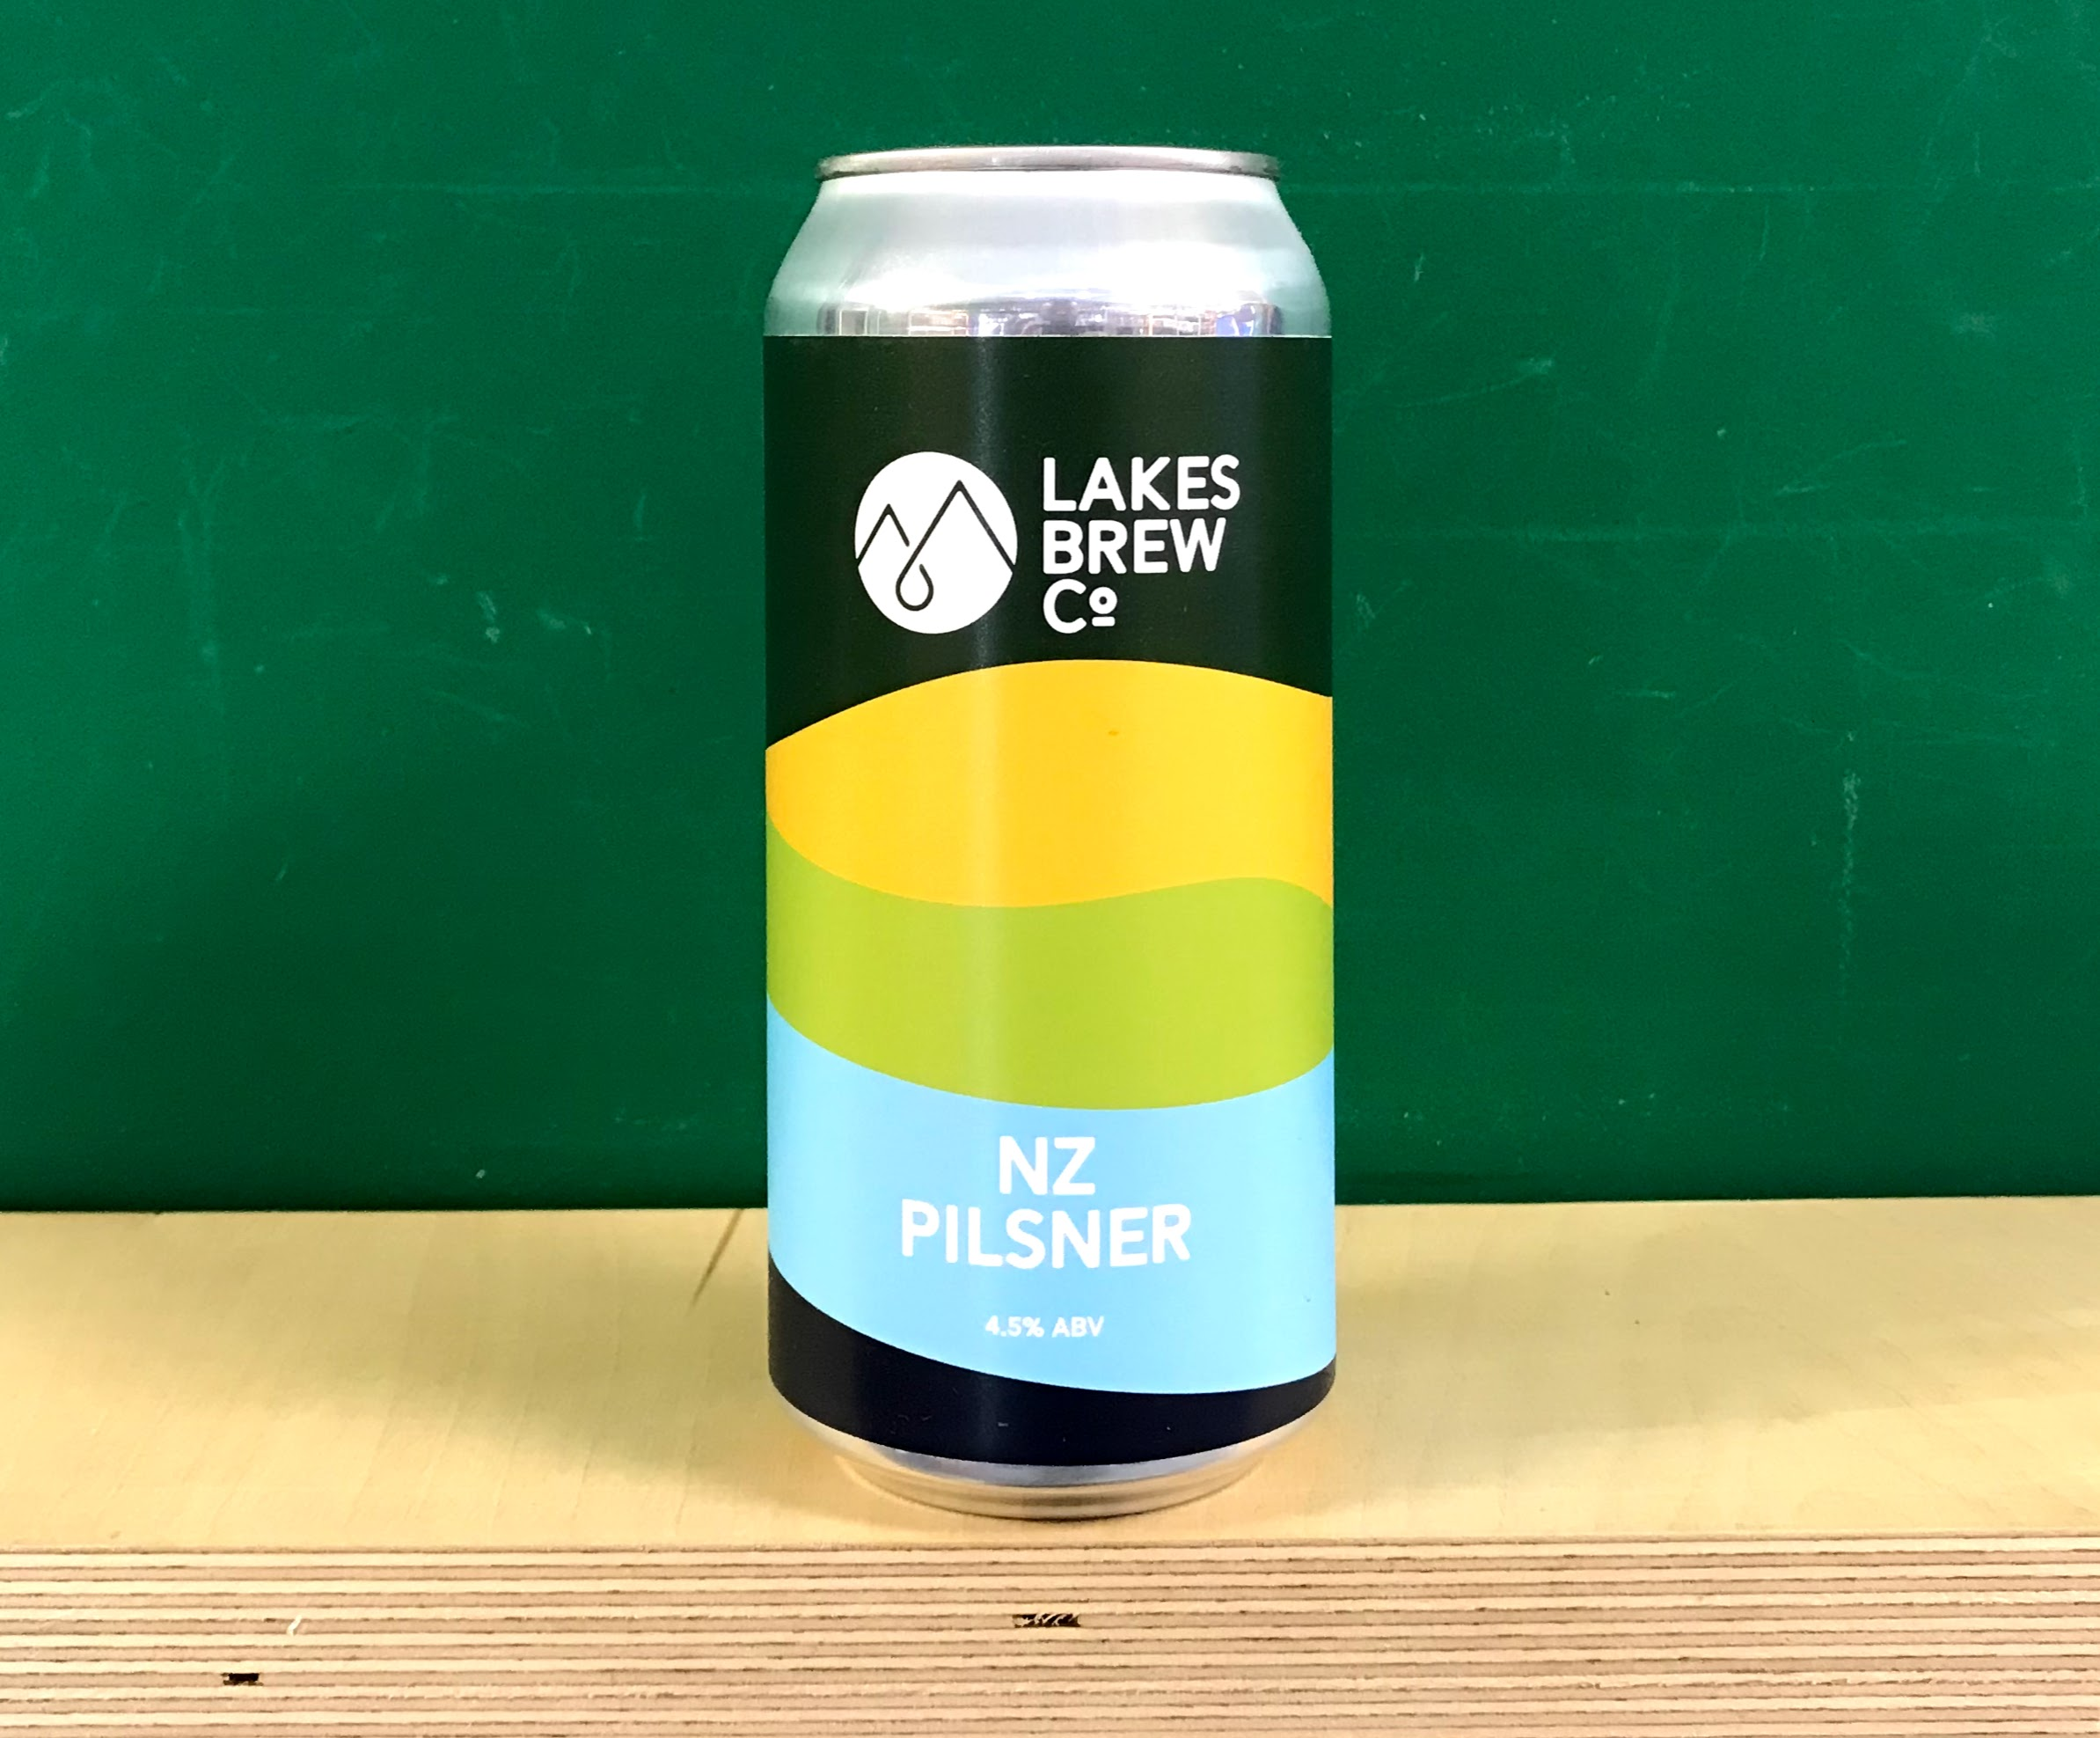 Lakes Brew Co NZ Pilsner